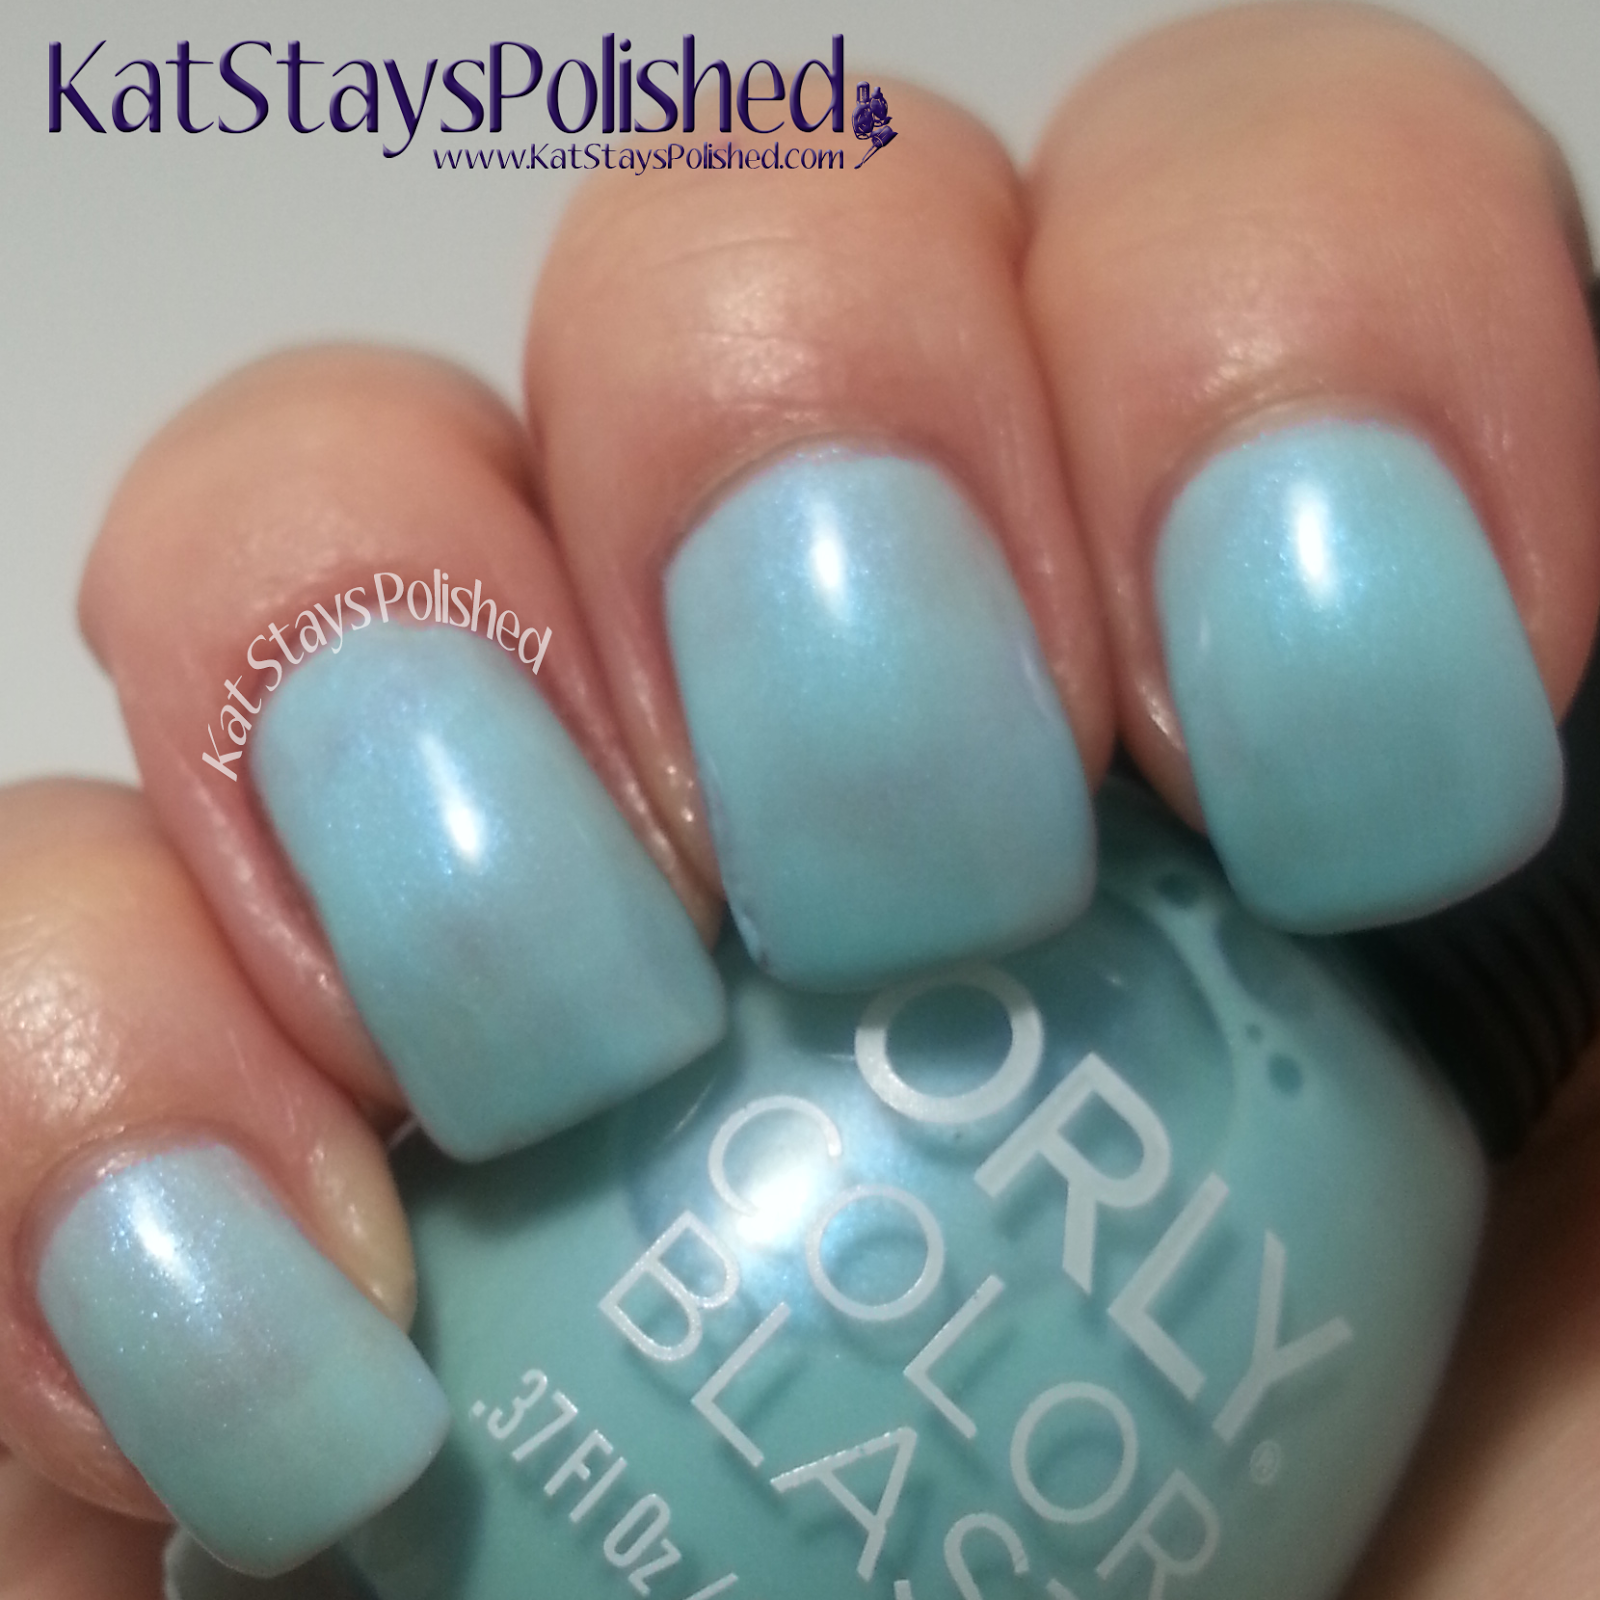 Orly Color Blast - Disney's Frozen Elsa Collection - Ice-Solated | Kat Stays Polished